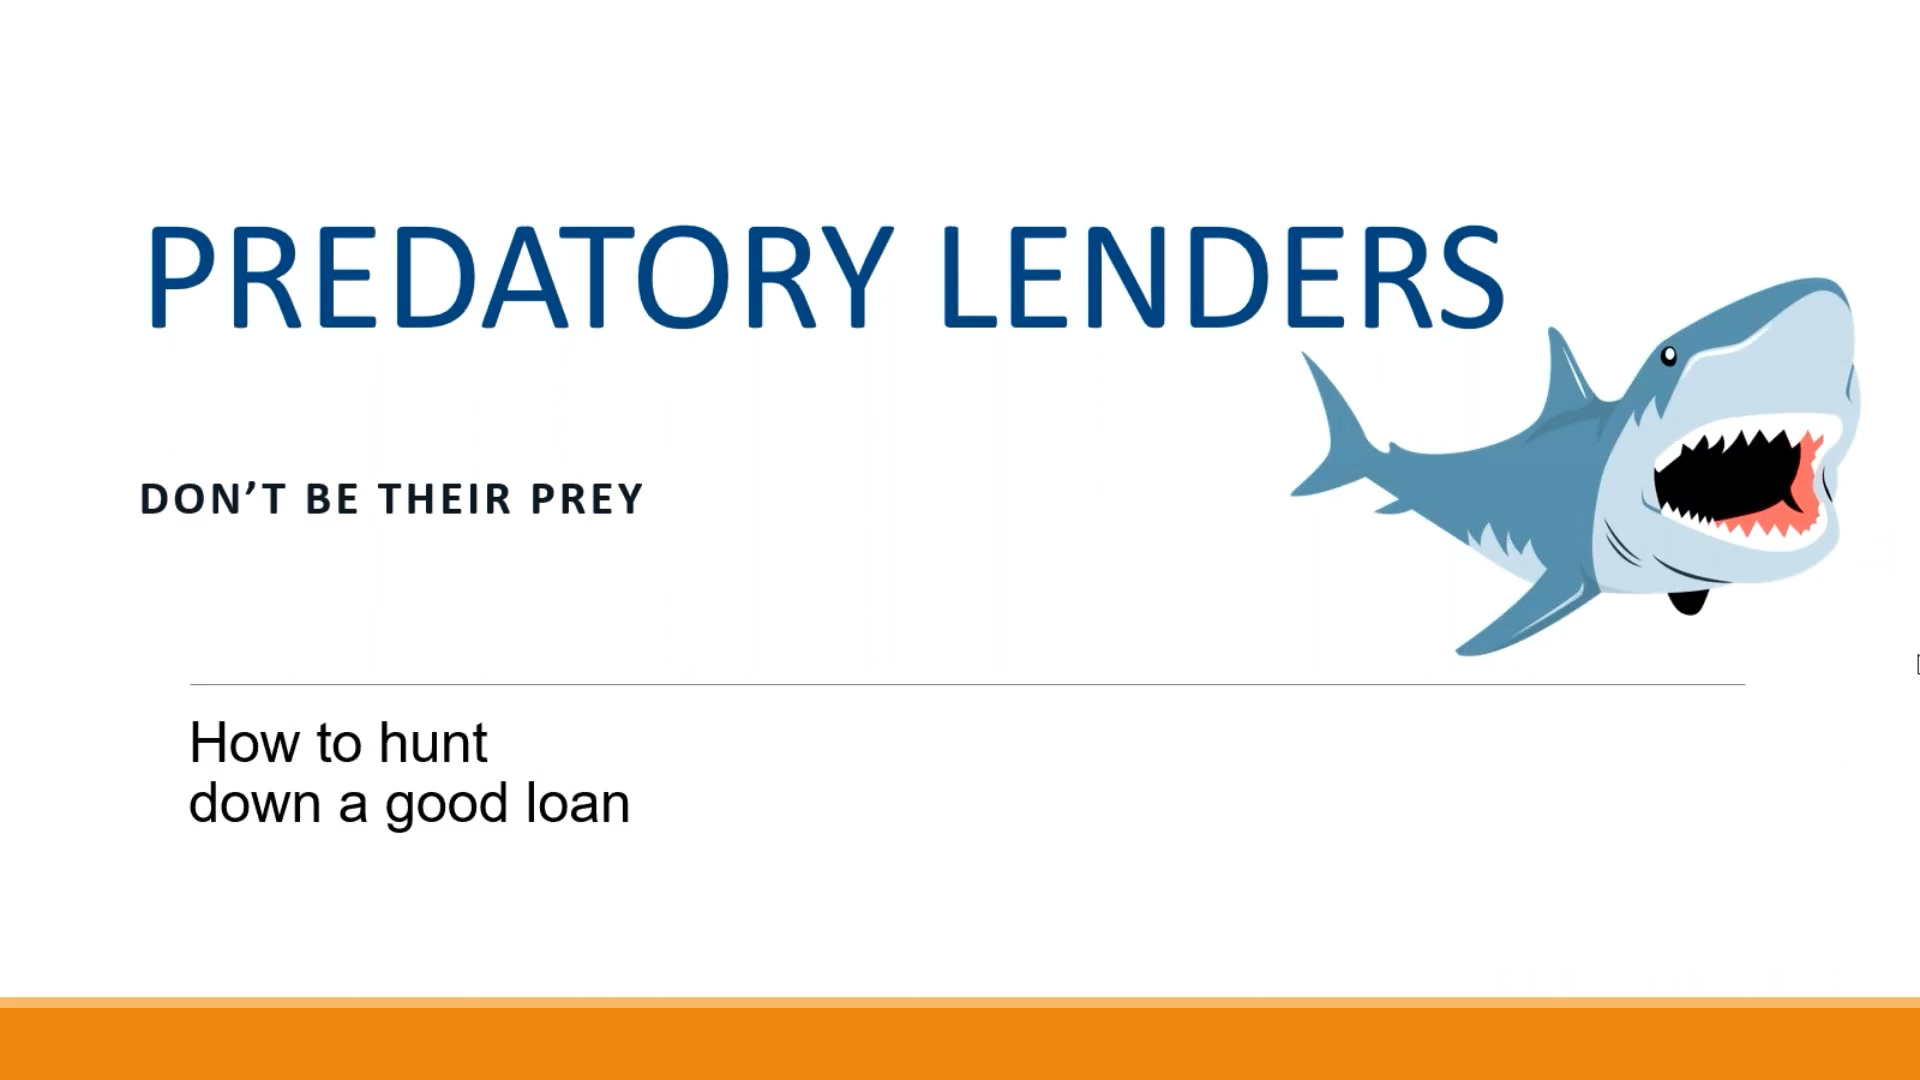 PREDATORY LENDERS – Don't be their prey